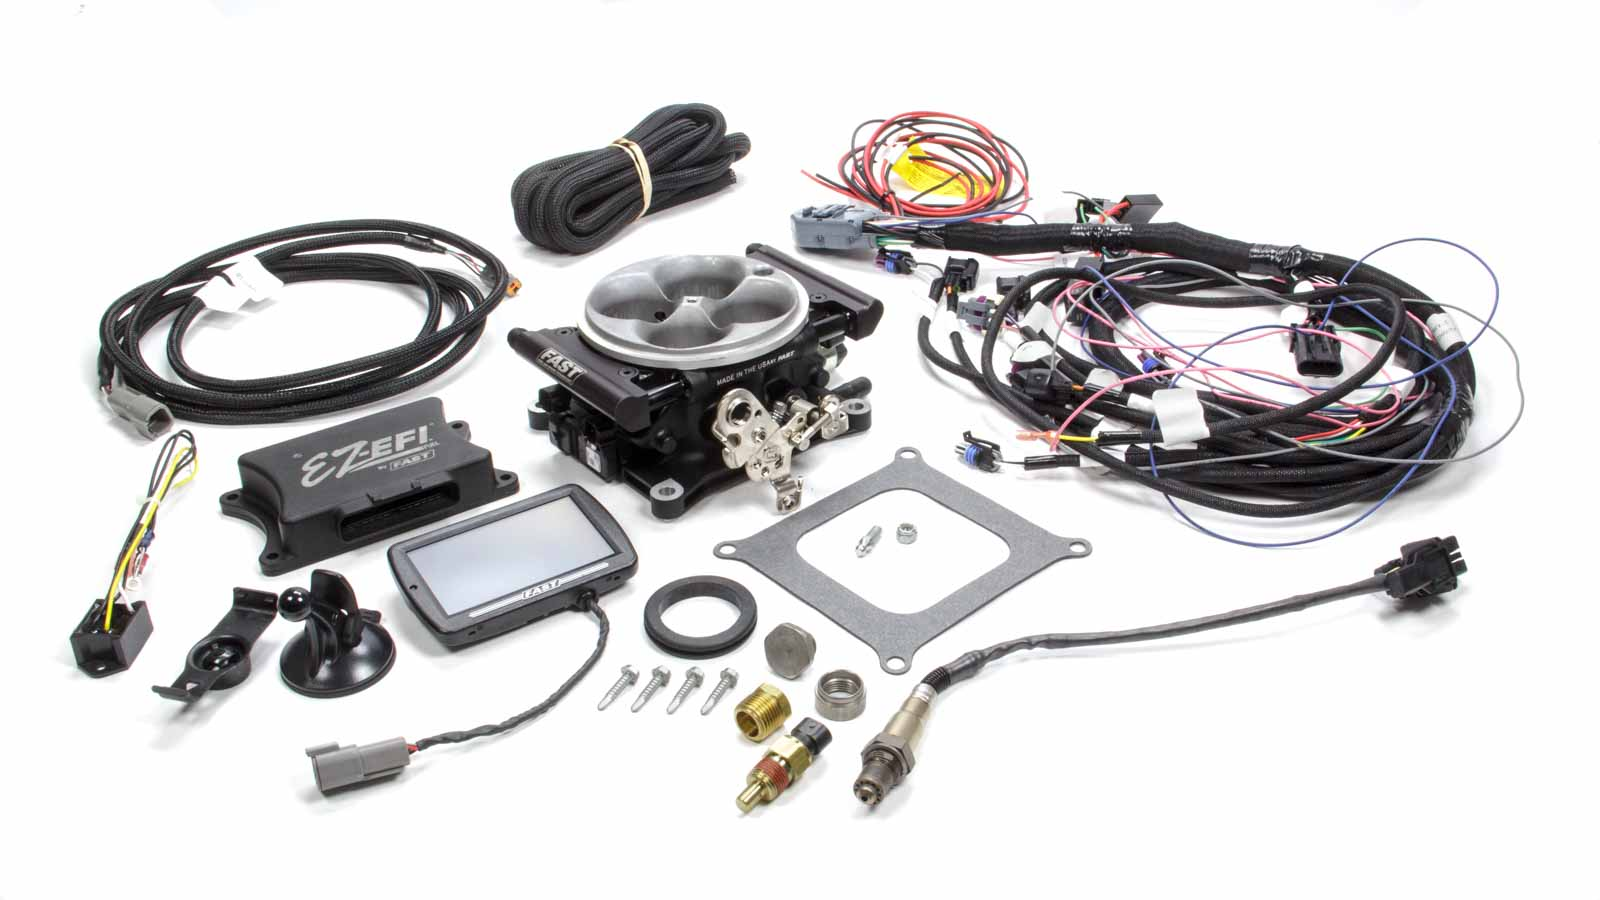 Details about FAST ELECTRONICS Universal Base EZ-EFI Fuel Injection Kit P/N  30226-06KIT